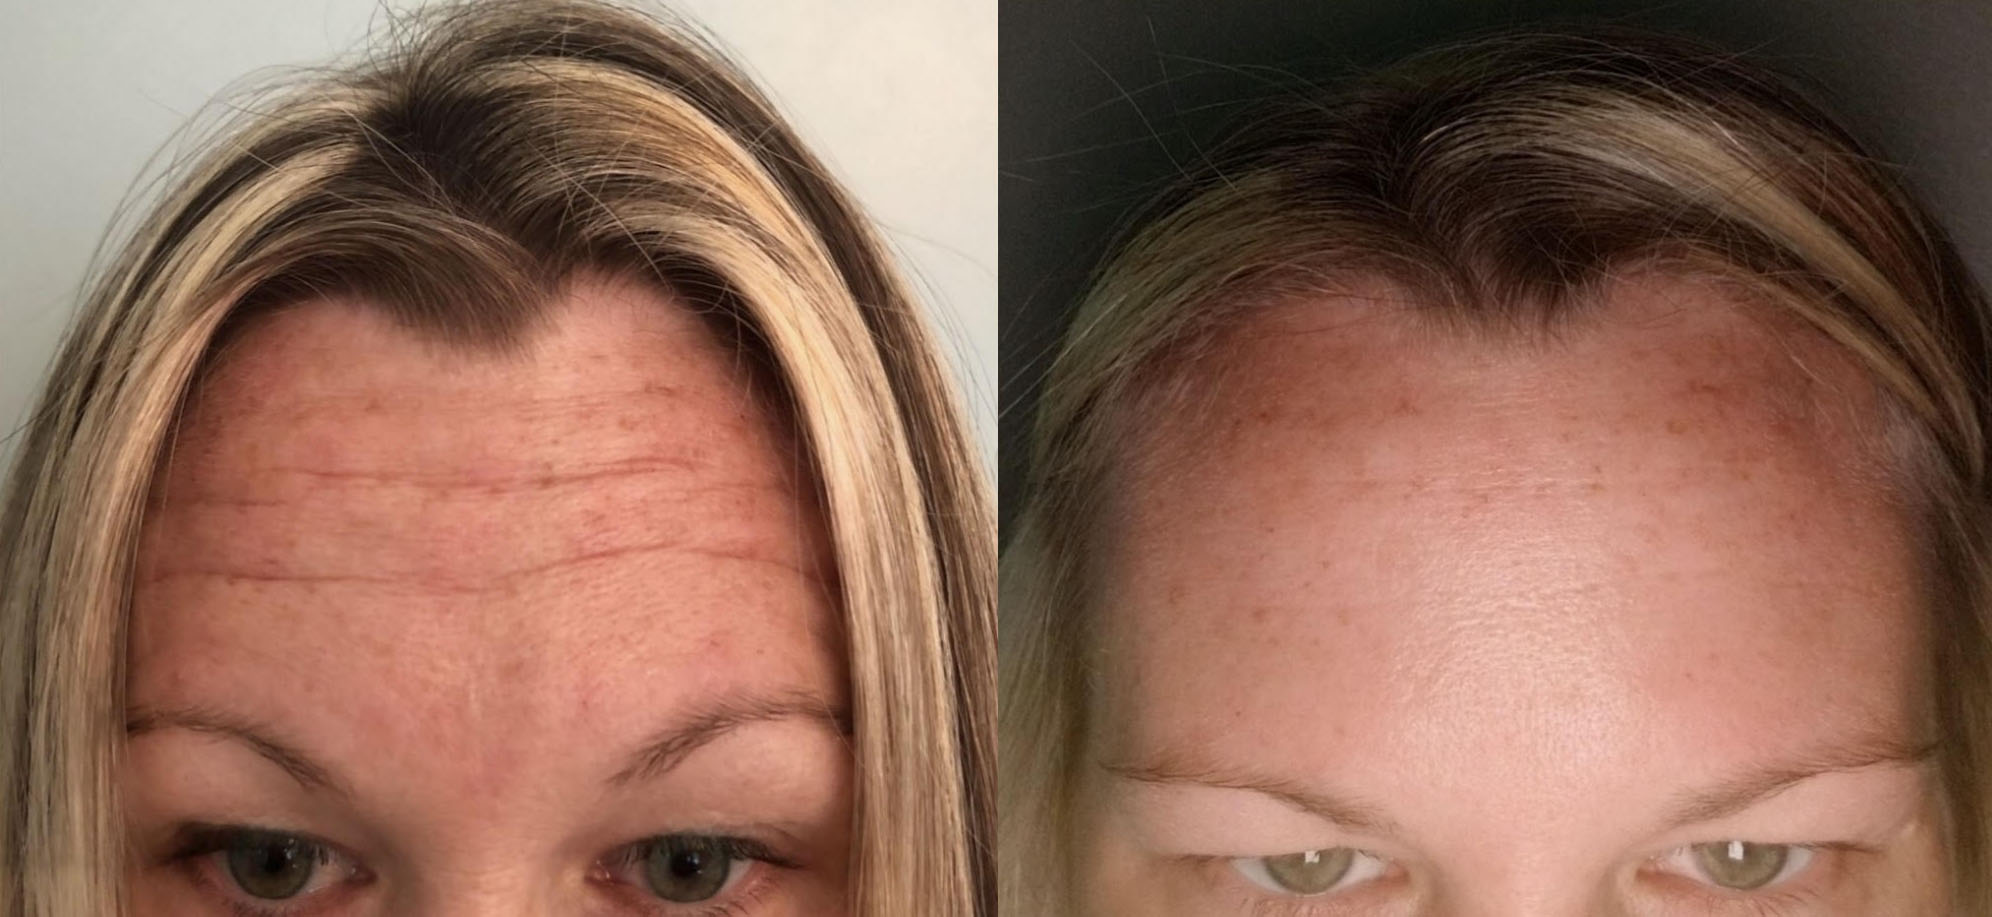 Botox - Before & After (14 days)